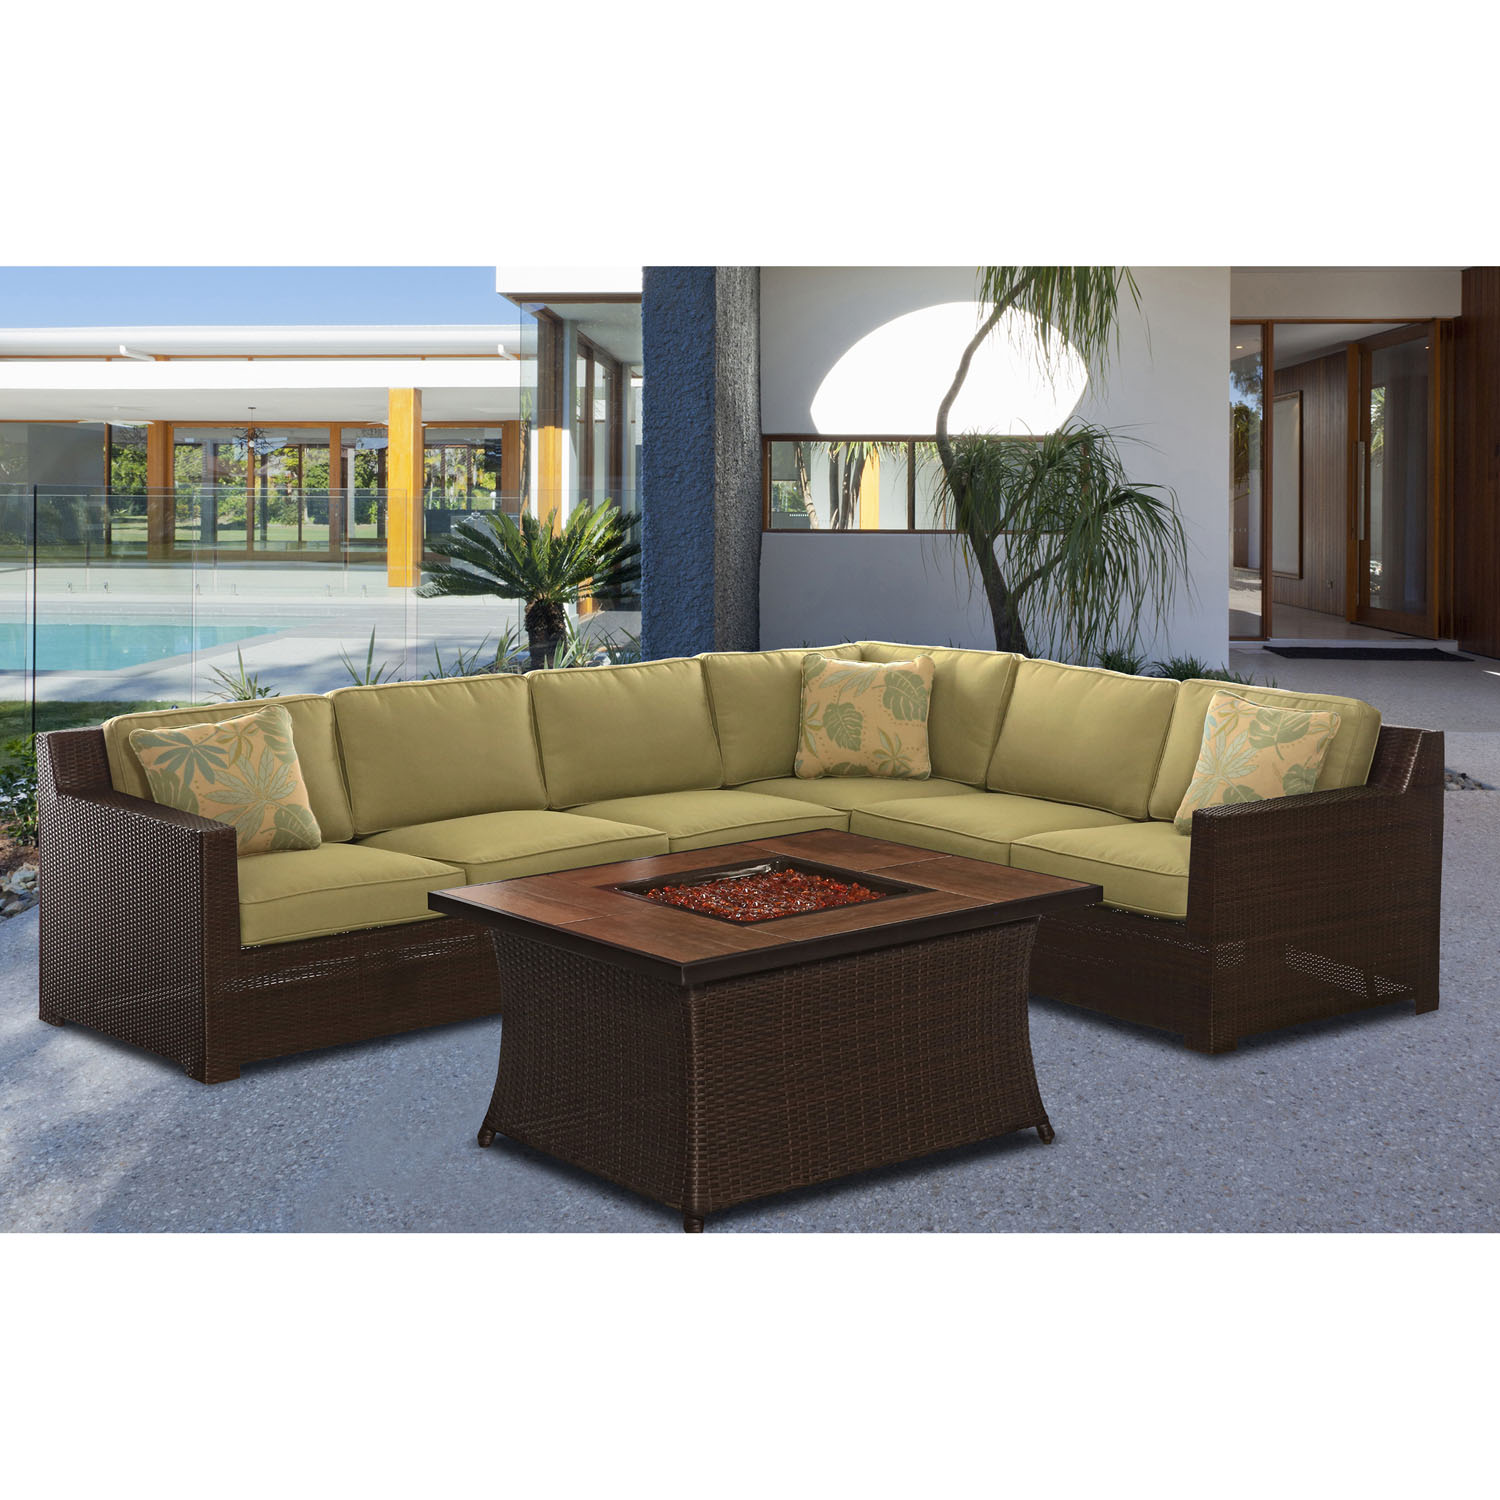 Hanover Metropolitan Woven Fire Pit Lounge Set with Glazed Faux-Wood Tile Top